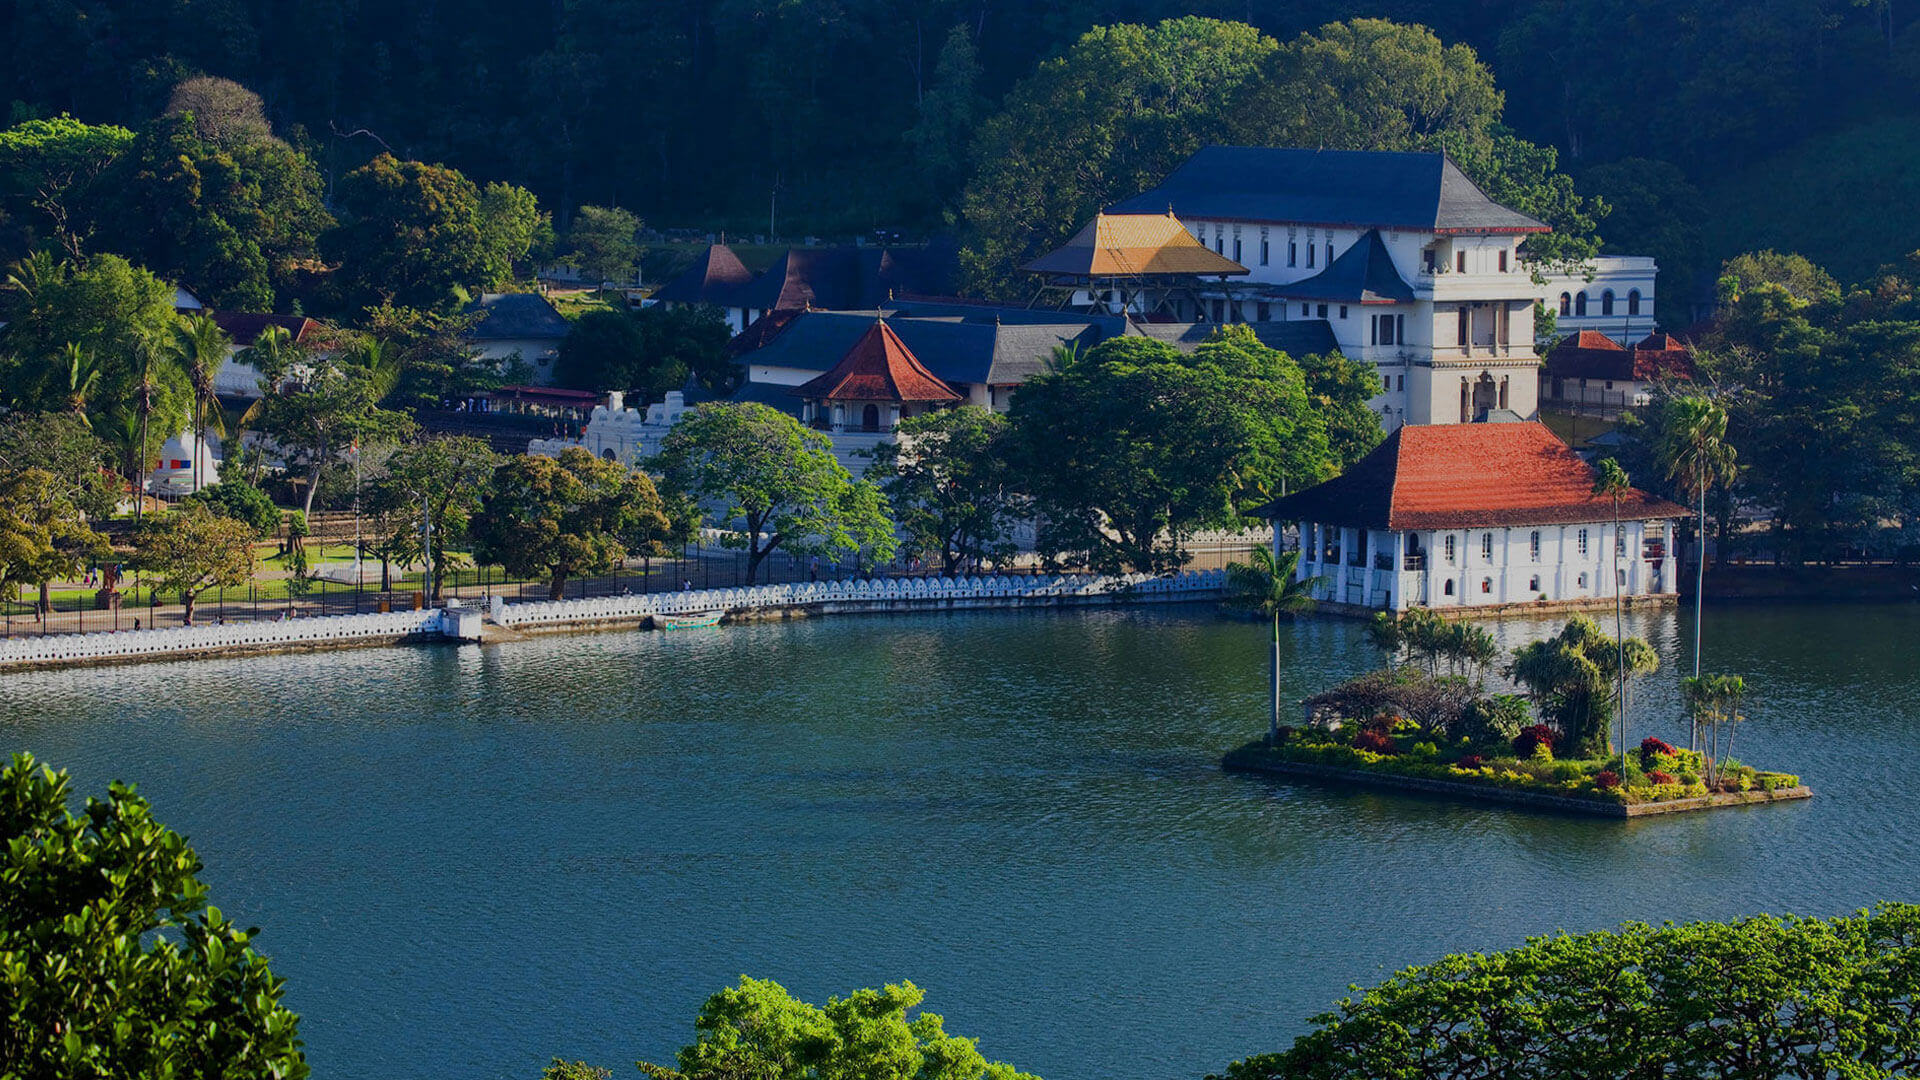 The Golden Crown Hotel - The Kandy Lake